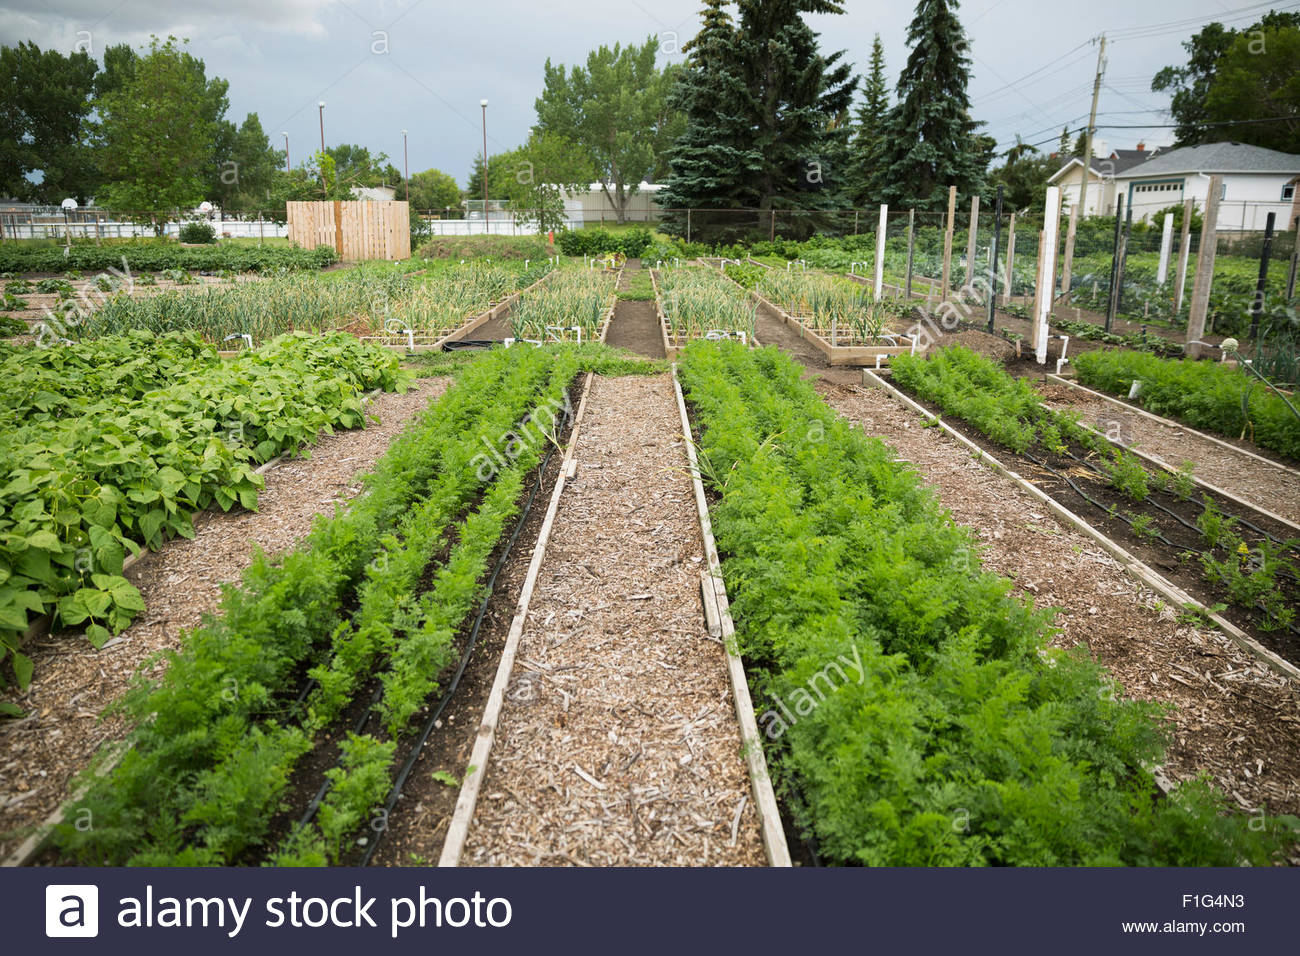 Rows of plants in community garden - Stock Image